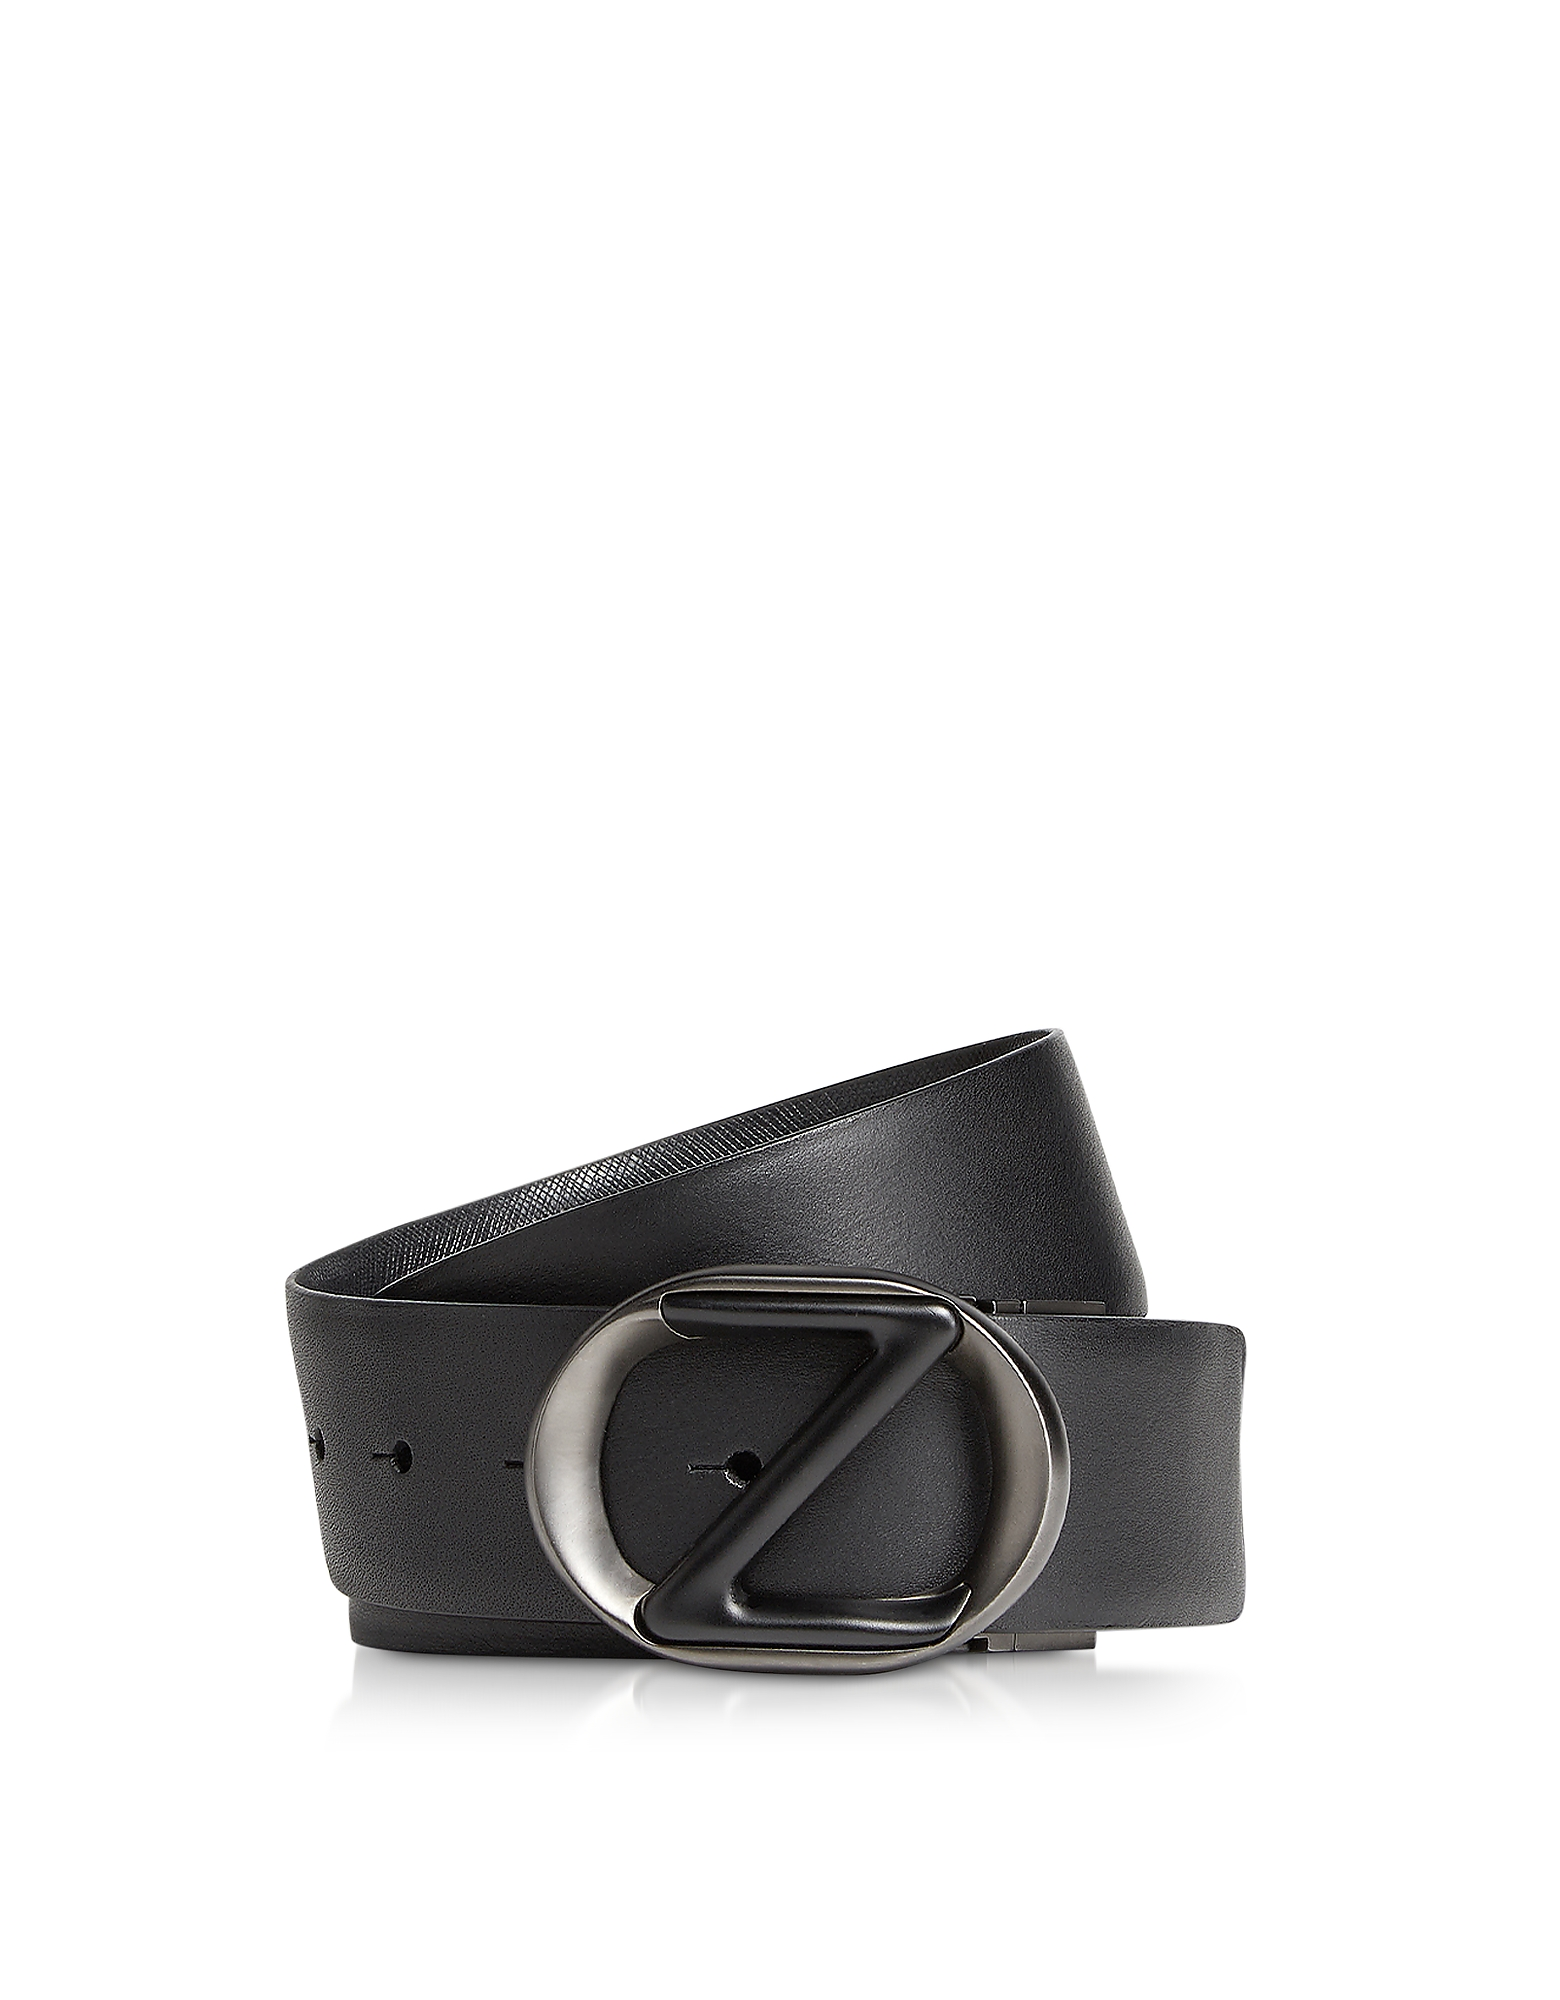 Ermenegildo Zegna  Men's Belts Black Smooth & Saffiano Leather Adjustable and Reversible Men's Belt